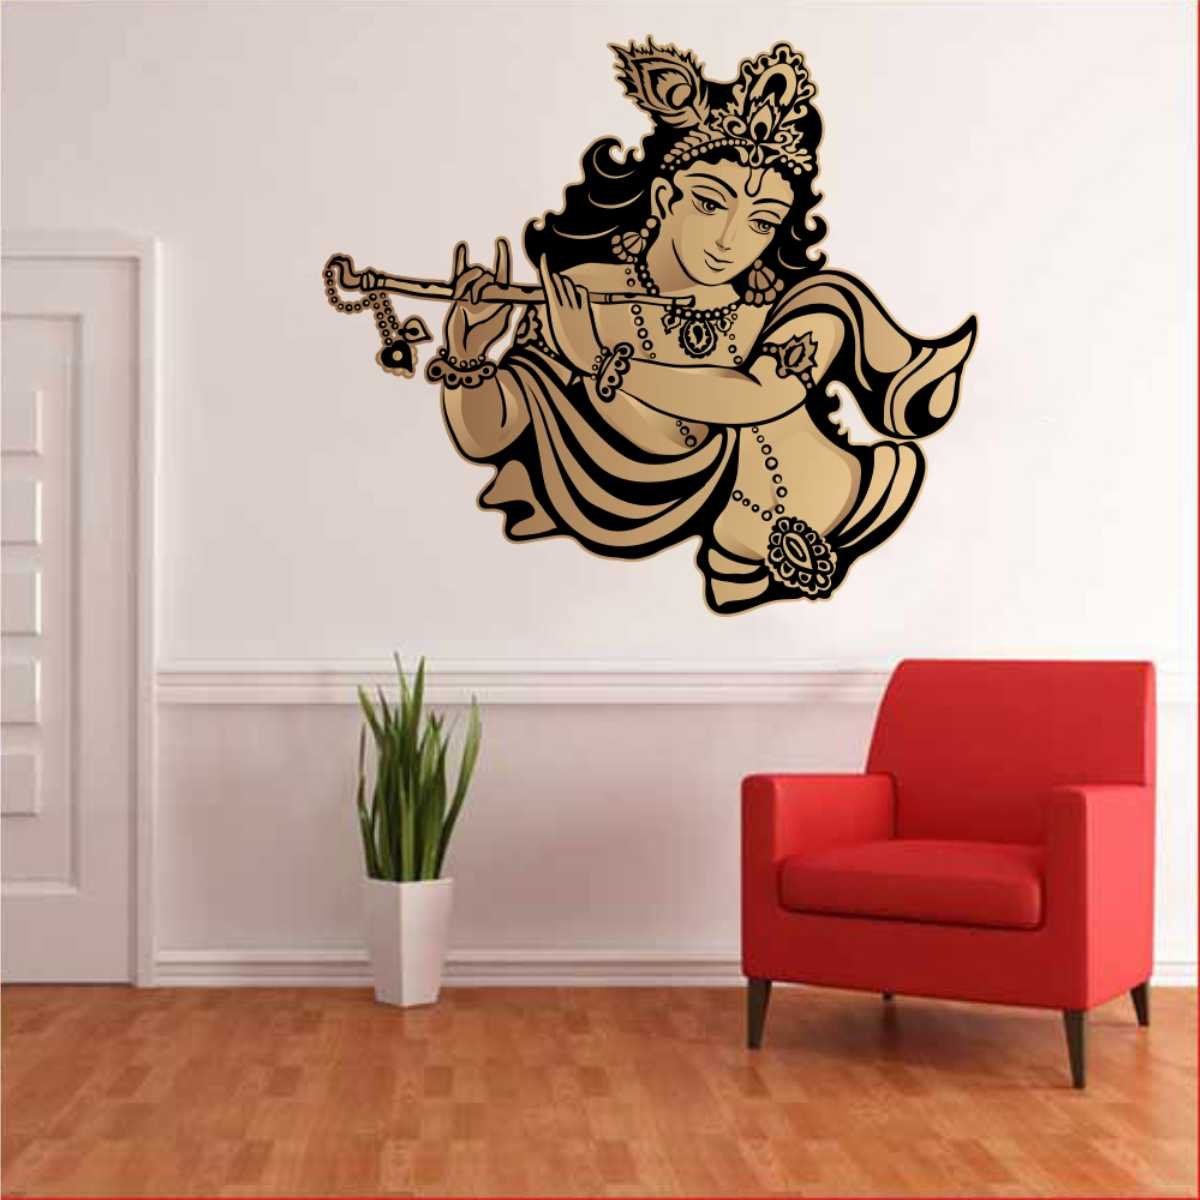 Wall stickers radha krishna - Buy Rawpockets Lord Krishna Flute Singing Wall Sticker Pvc Vinyl 70 Cm X 60cm Online At Low Prices In India Amazon In